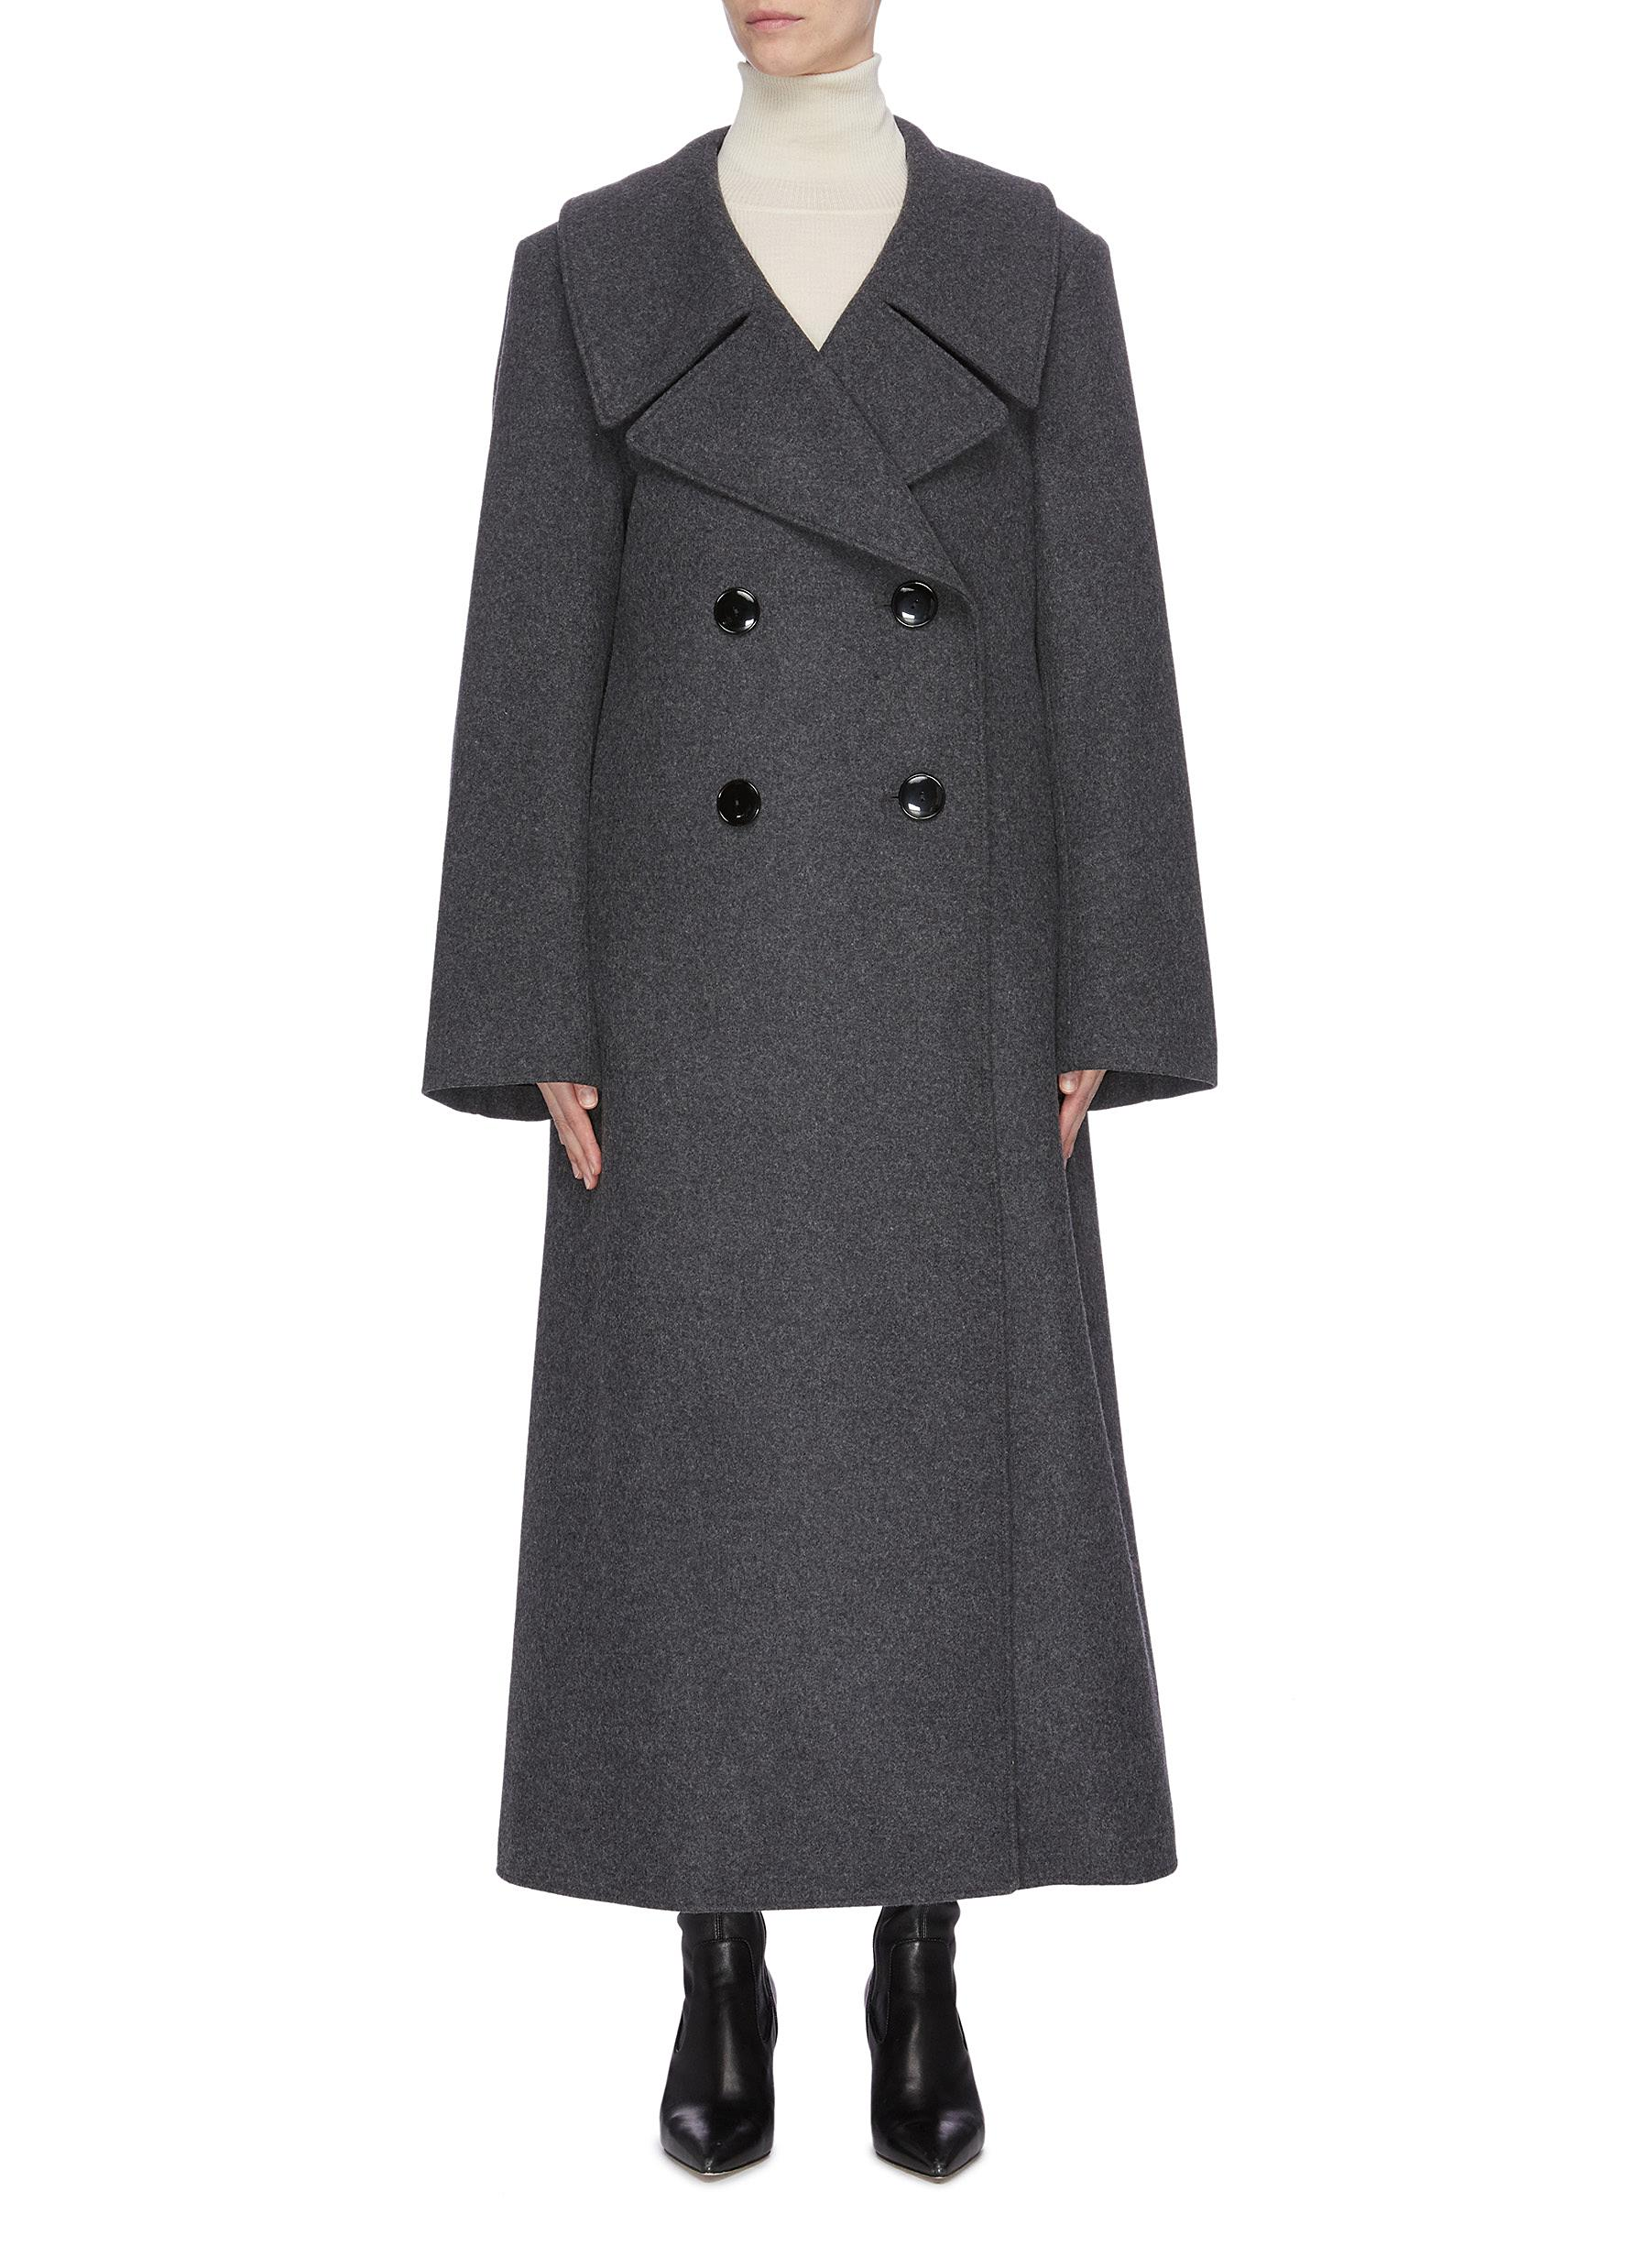 Double-breasted melton coat by Lemaire